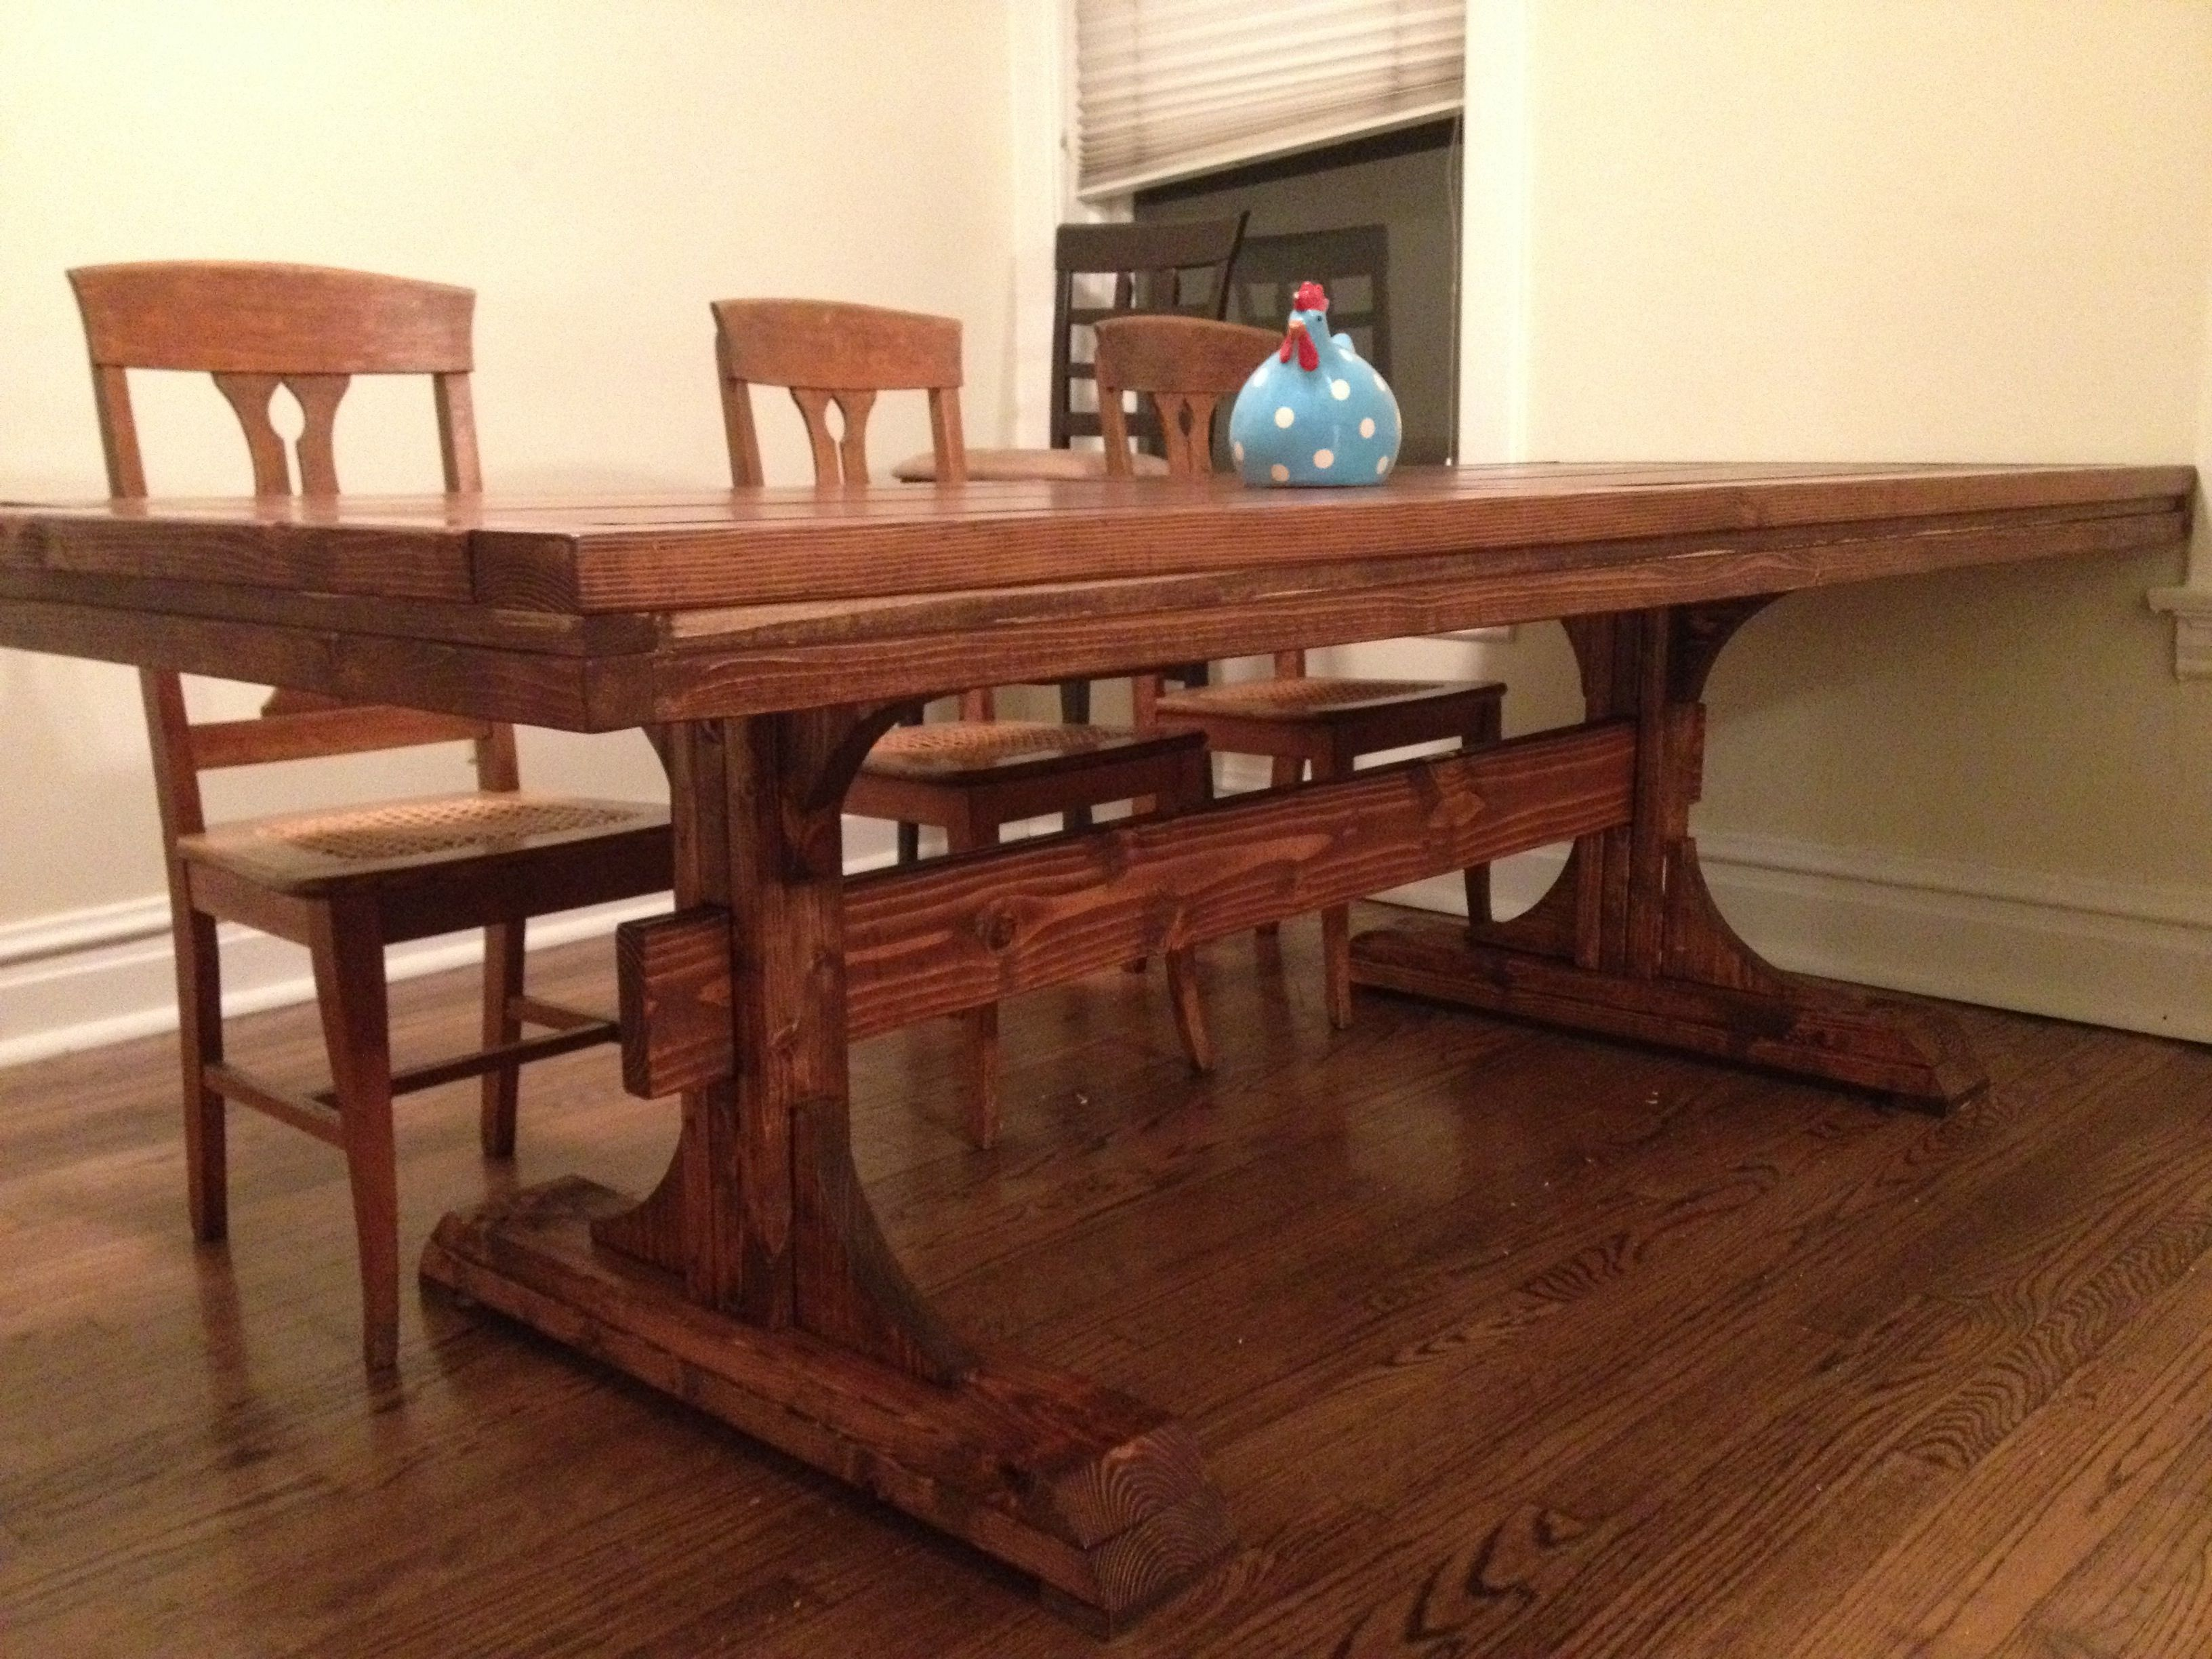 Double Pedestal Farmhouse Table 8 Feet Do It Yourself Home Projects From Ana White Farmhouse Dining Room Table Double Pedestal Dining Table